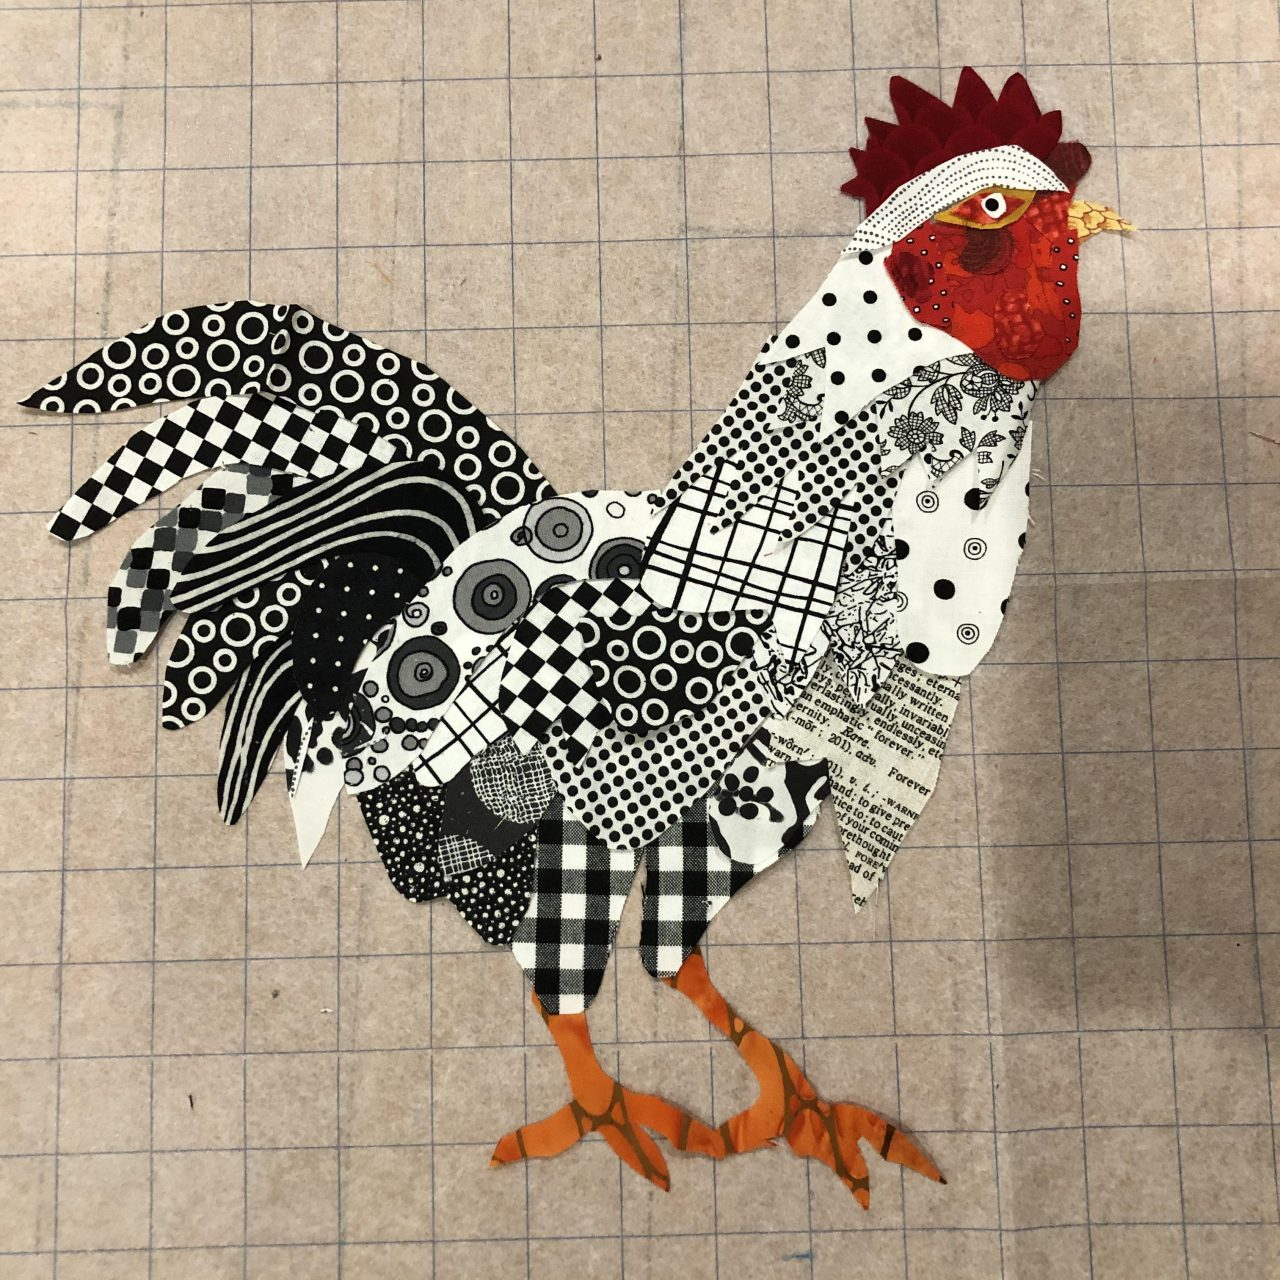 An applique cockerel with a black and white patterned body, orange feet and a red face by Yvonne Iten-Scott.